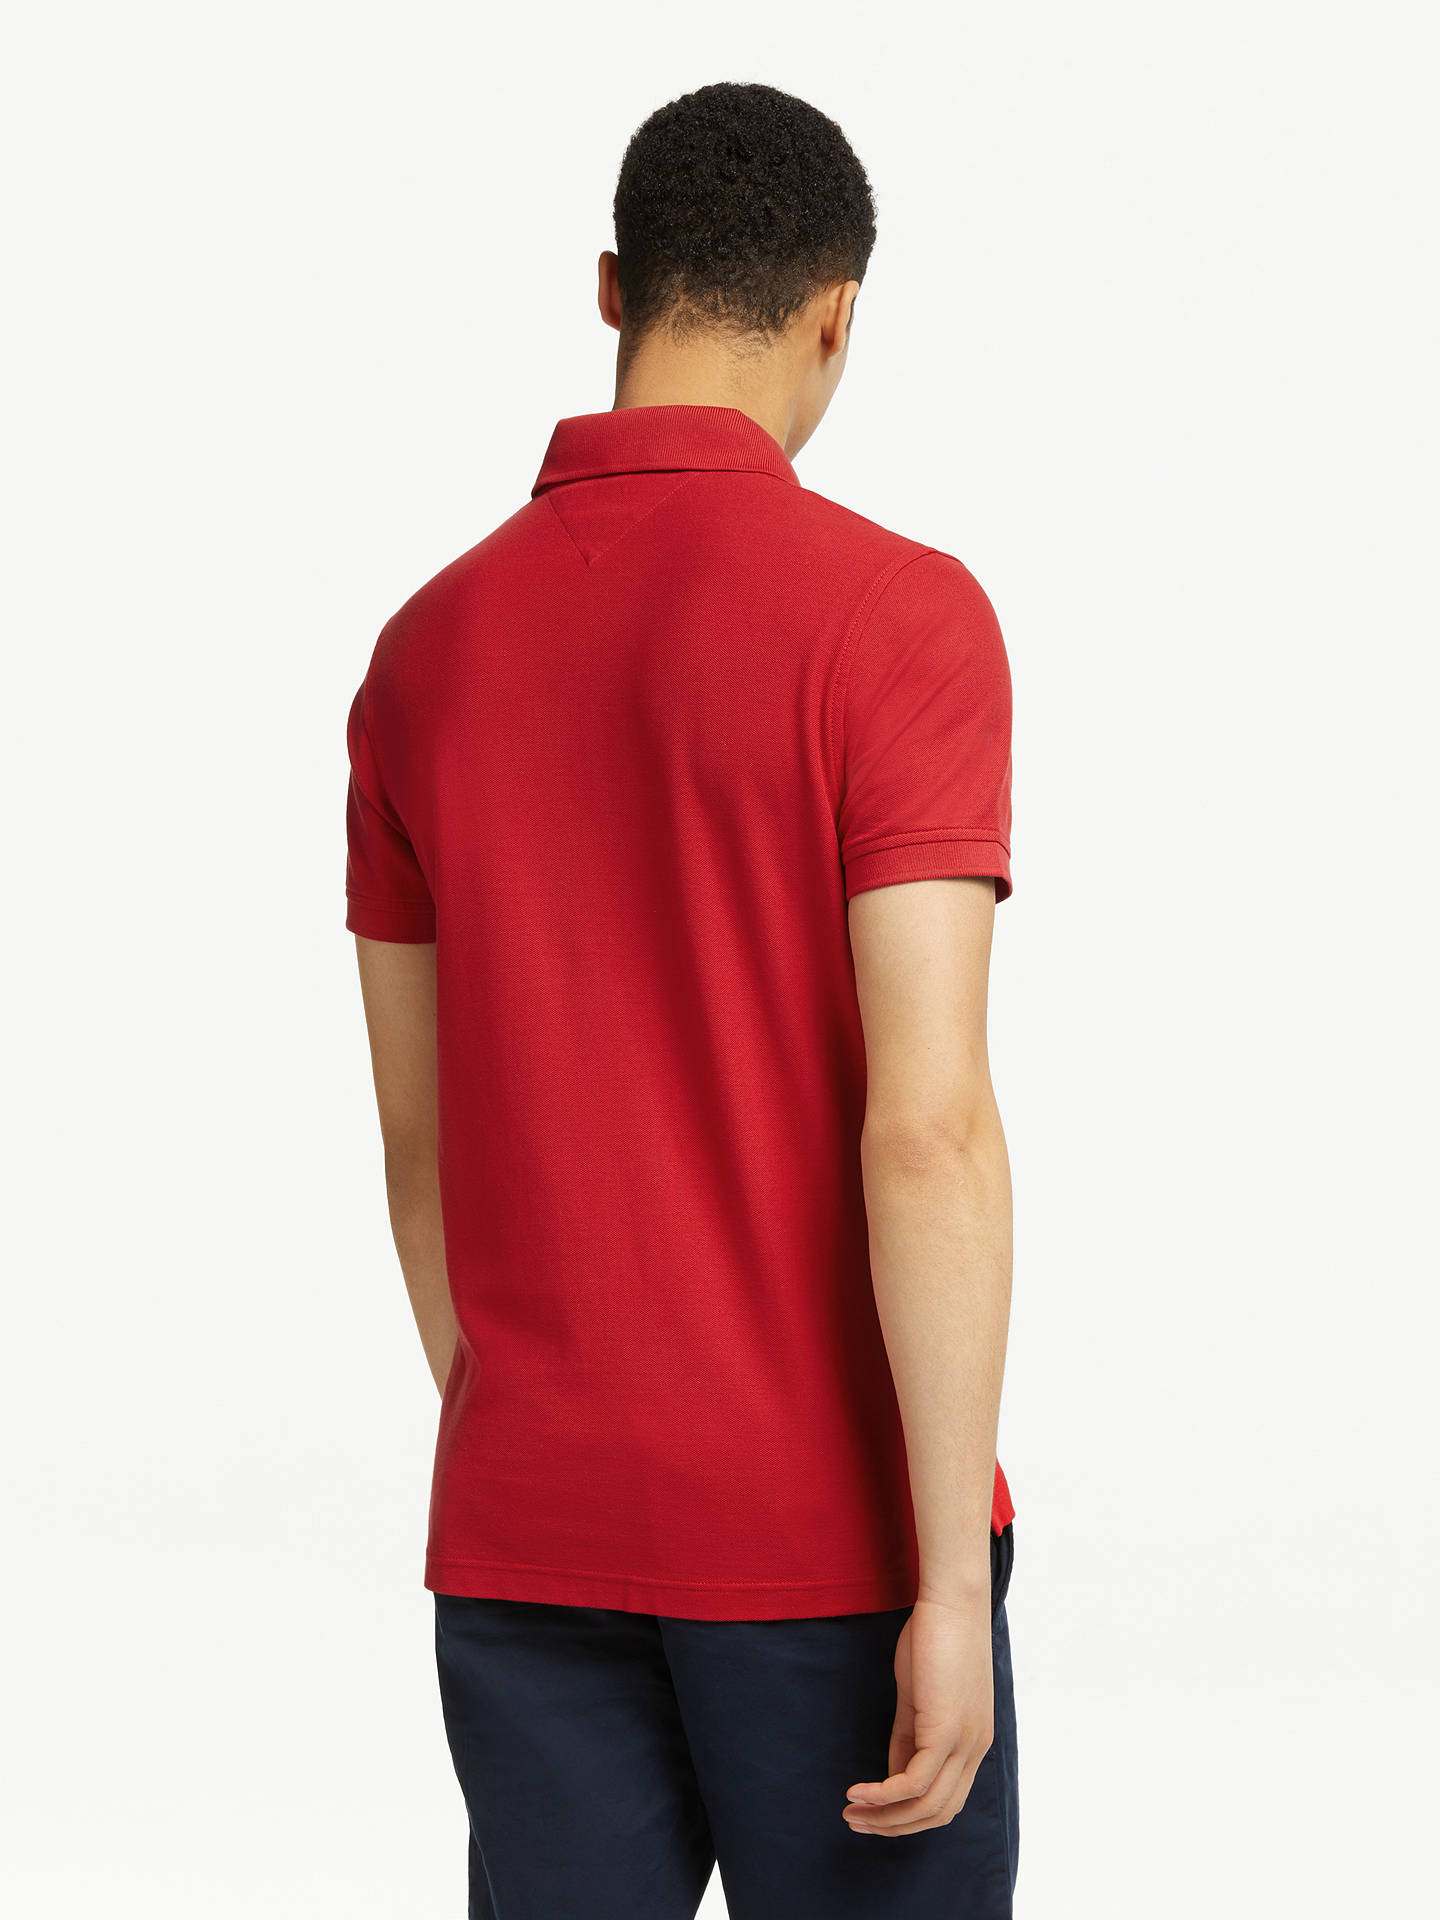 685b9f950 ... Buy Tommy Hilfiger Slim Polo Shirt, Haute Red, S Online at  johnlewis.com ...